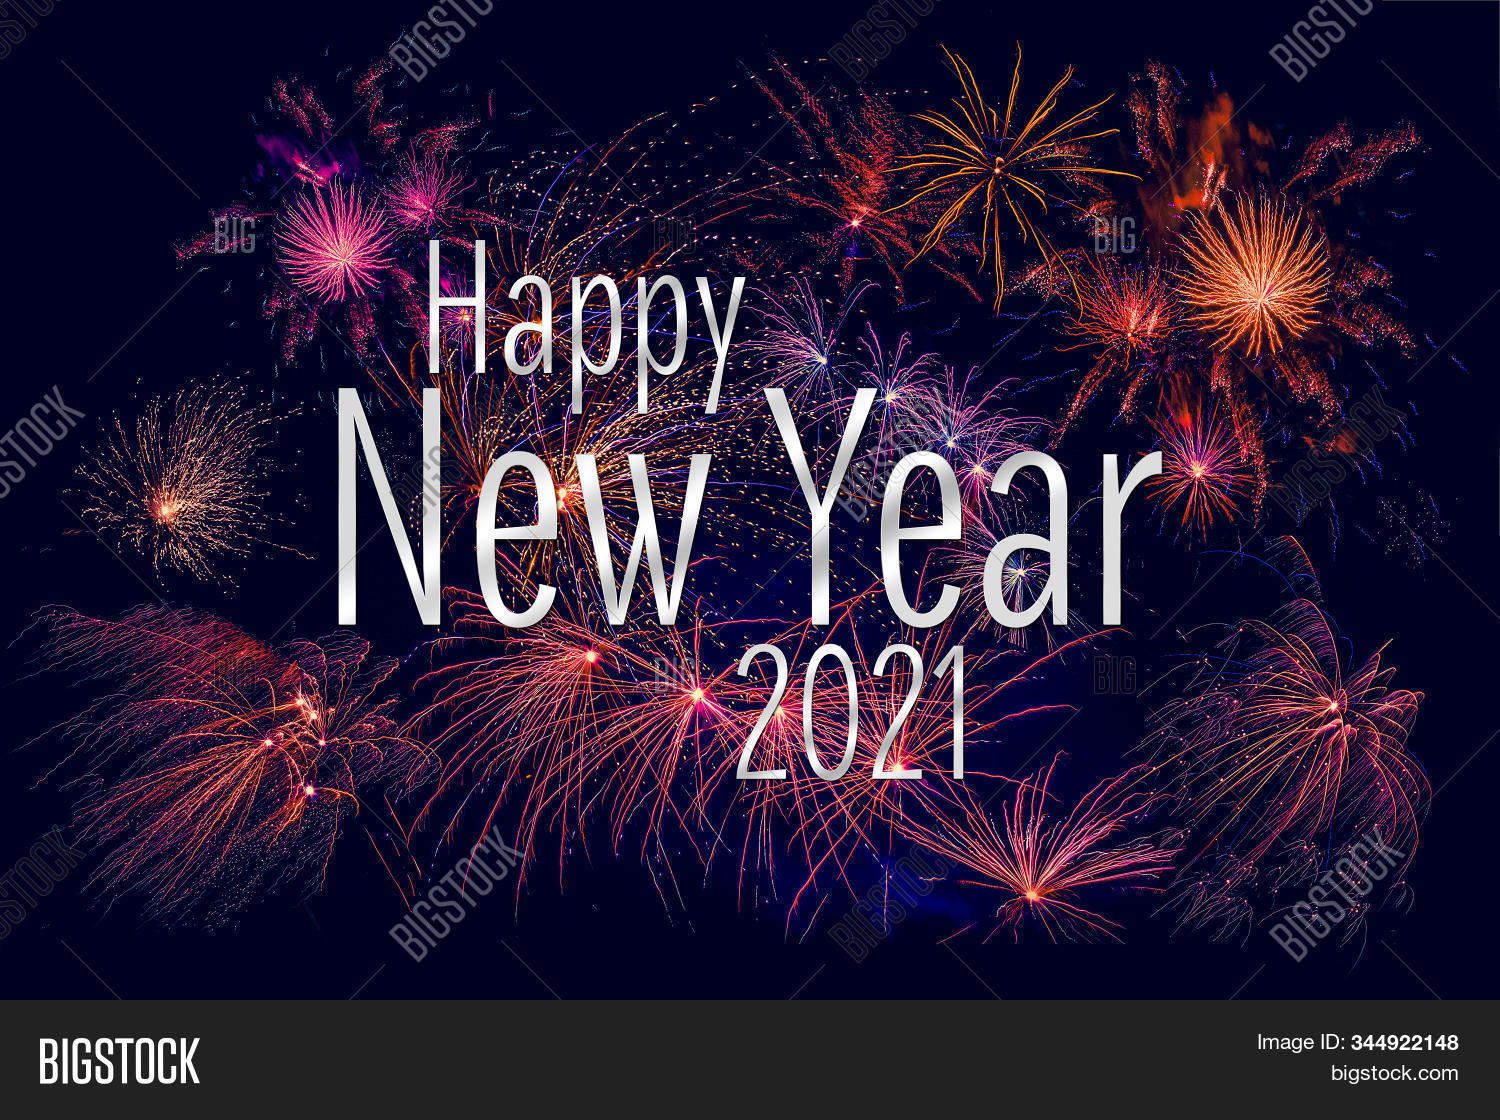 Happy New Year 2021 Image & Photo (Free Trial) | Bigstock